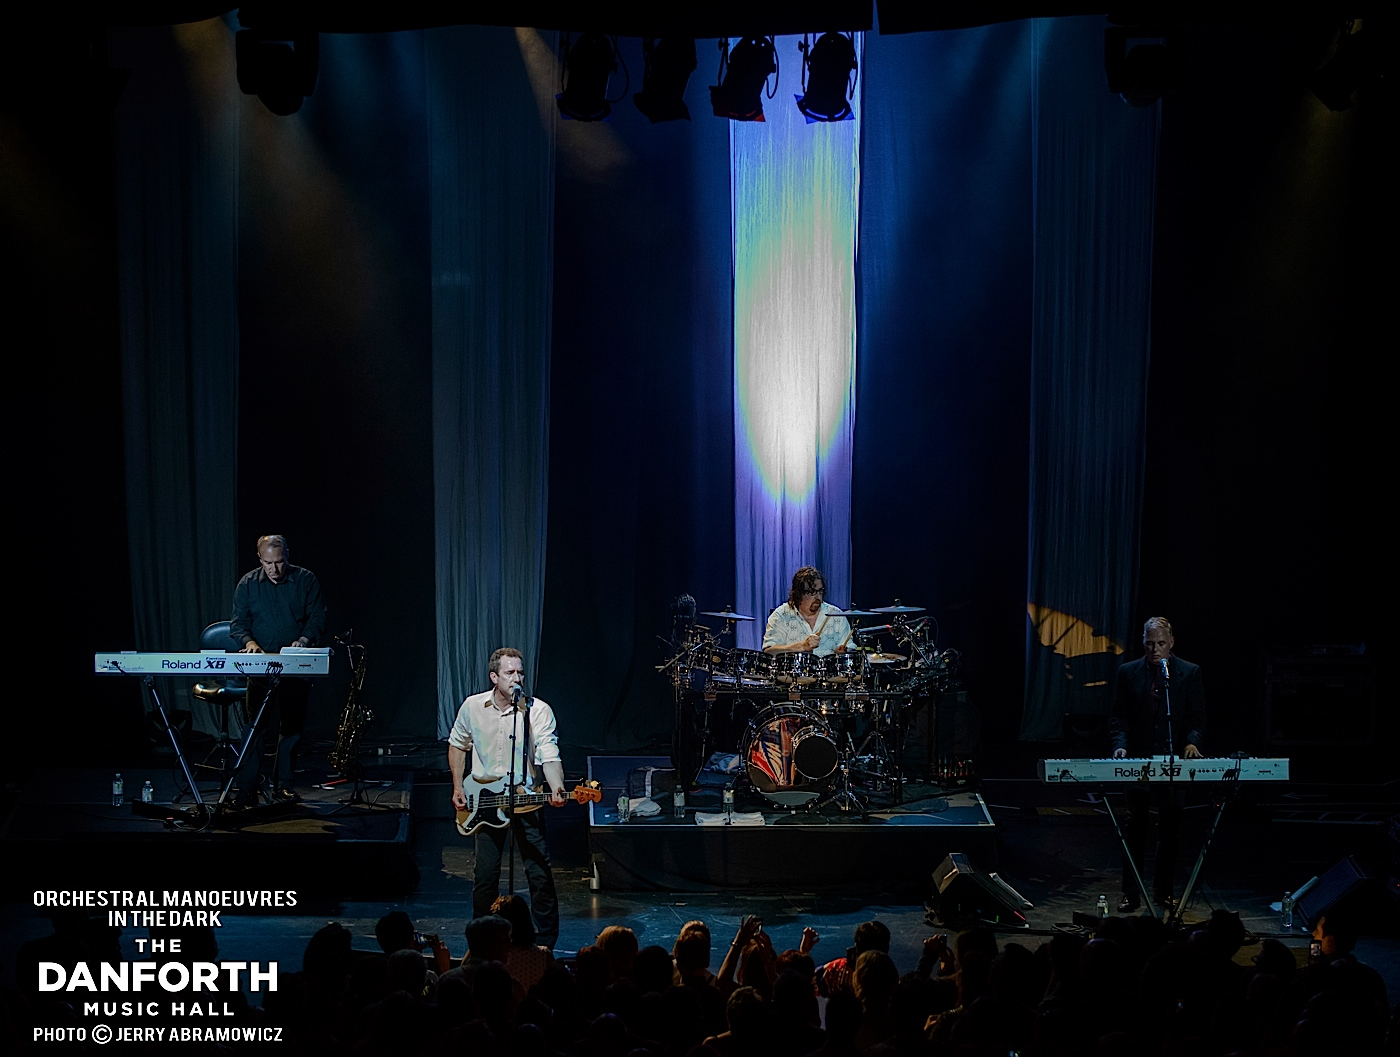 20130711 Orchestral Manoeuvres in the Dark at The Danforth Music Hall 0331